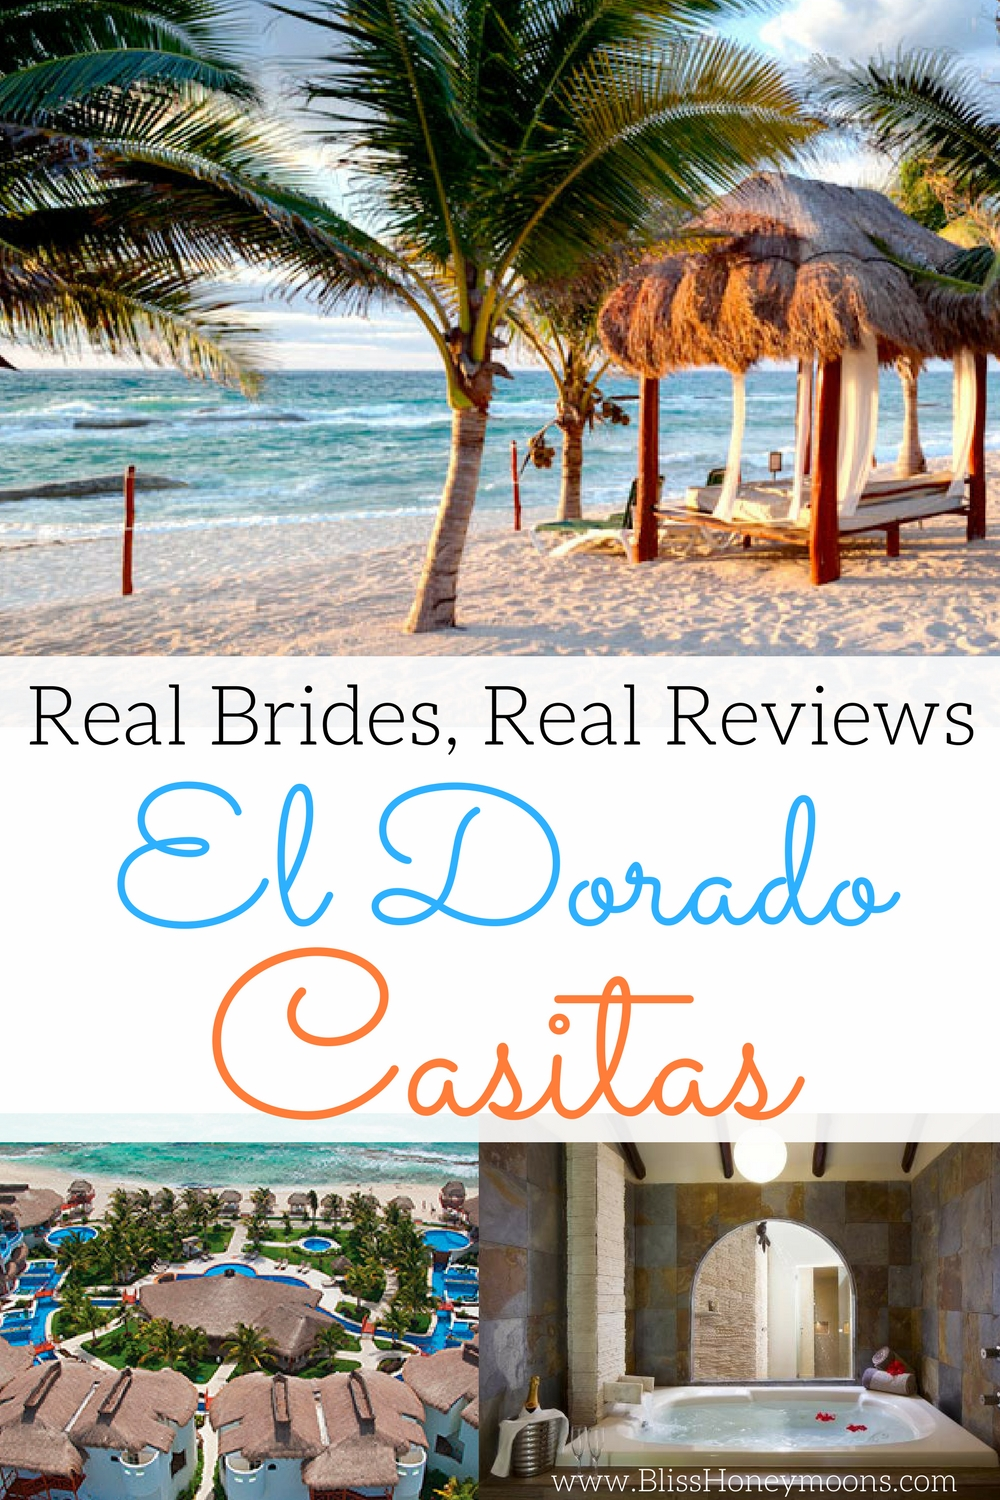 El Dorado Casitas travel review, El Dorado Casitas review, romantic travel destinations, Bliss Honeymoons travel review